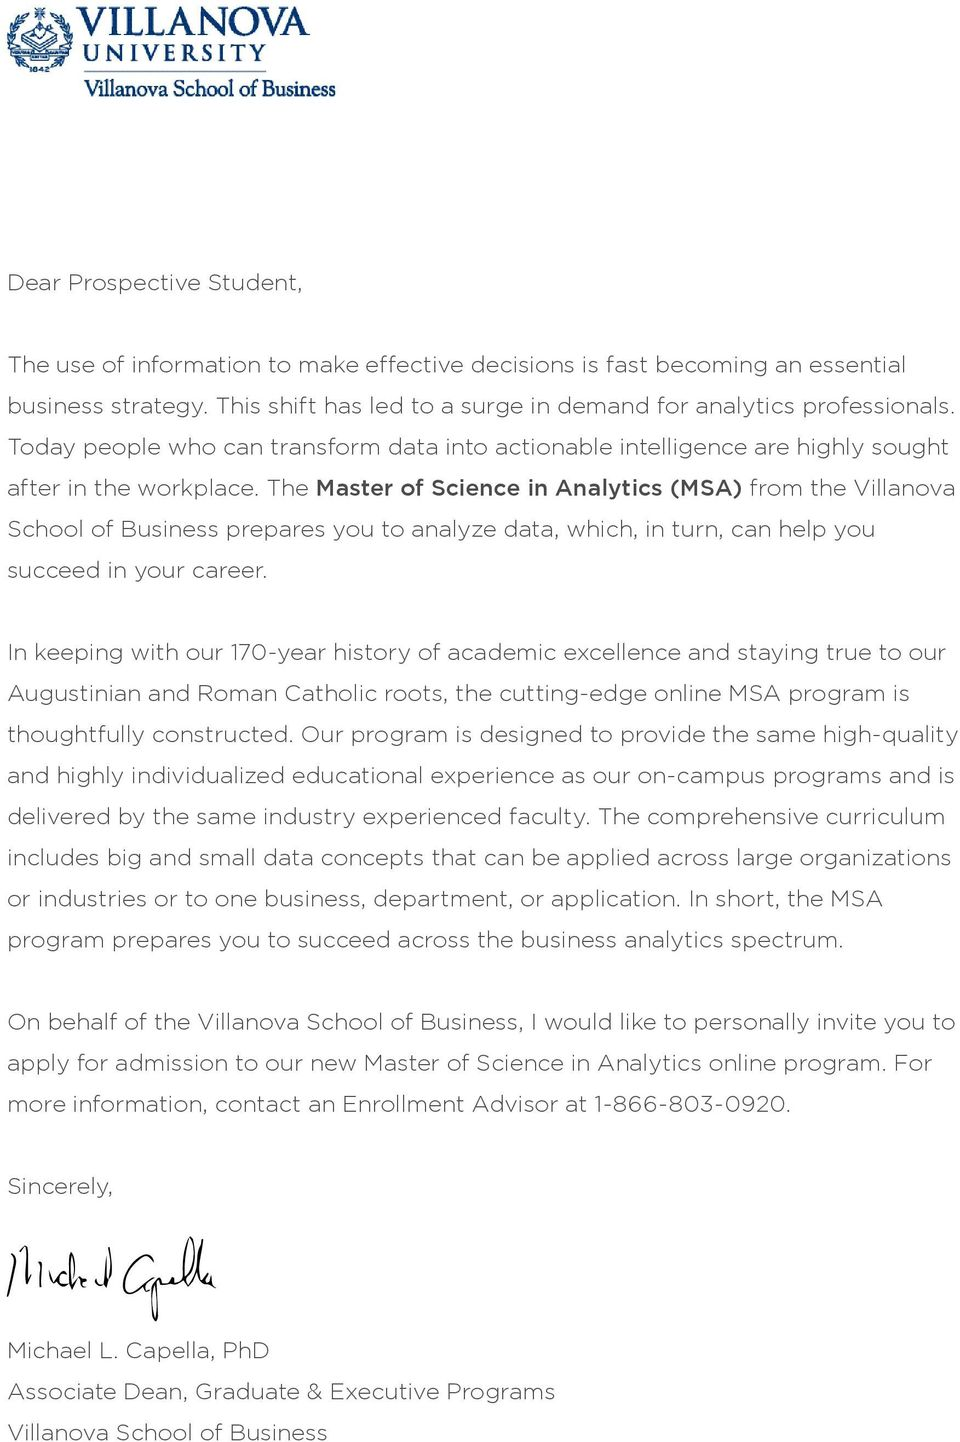 The Master of Science in Analytics (MSA) from the Villanova School of Business prepares you to analyze data, which, in turn, can help you succeed in your career.